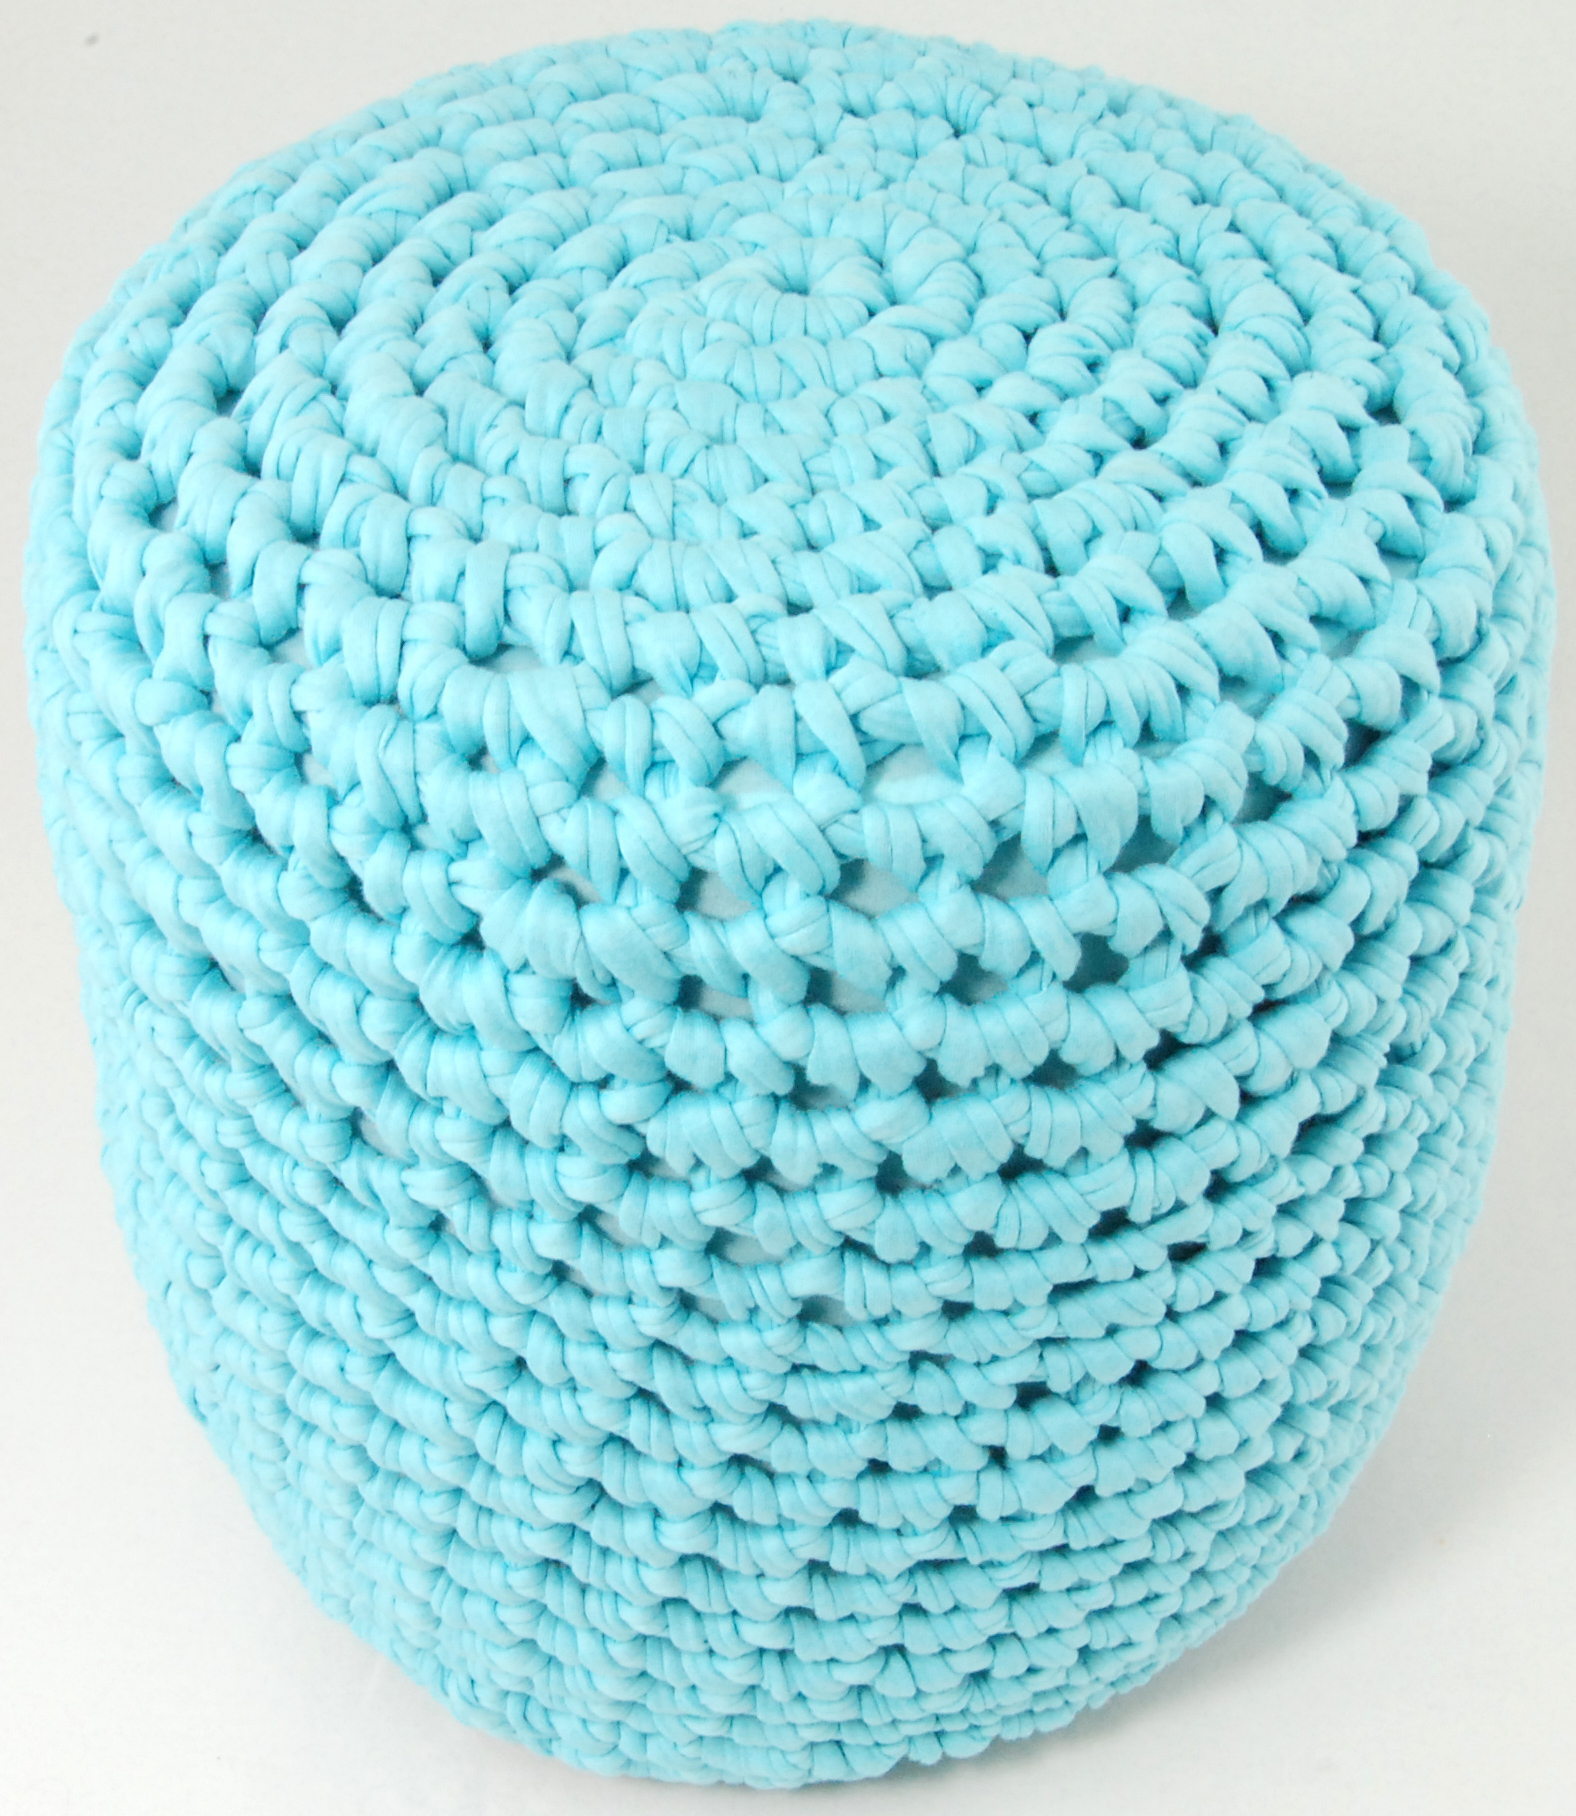 Crochet stool made with Zpagetti - LVLY